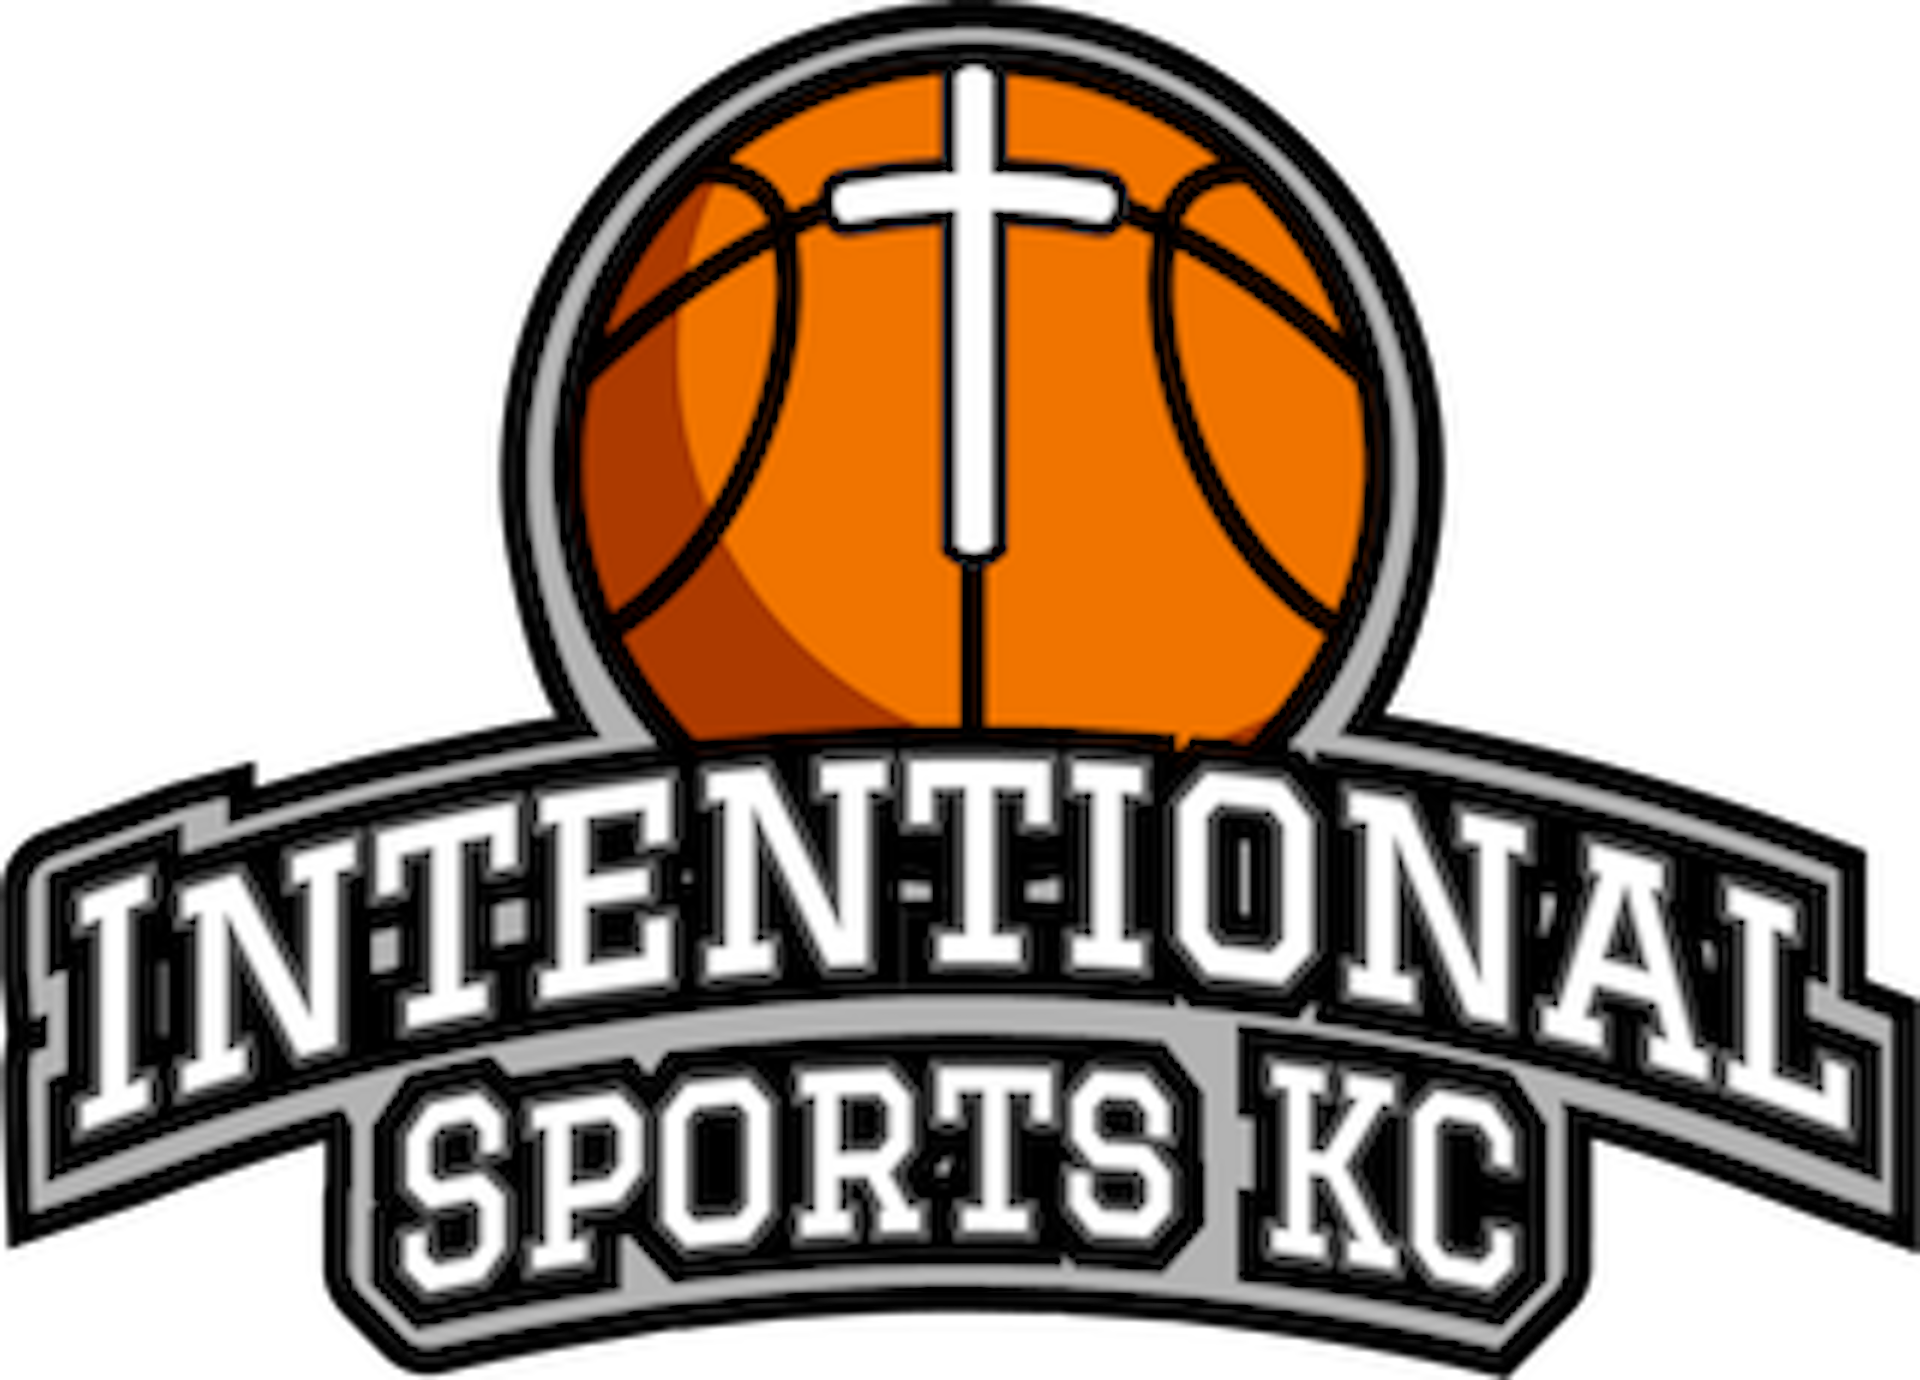 CONTACT US - INTENTIONAL SPORTS KCA Harbor Ministries Network Church Family13622 WEST 62ND STREETSHAWNEE, KS, 66216brice@isportskc.com(913) 717-9774